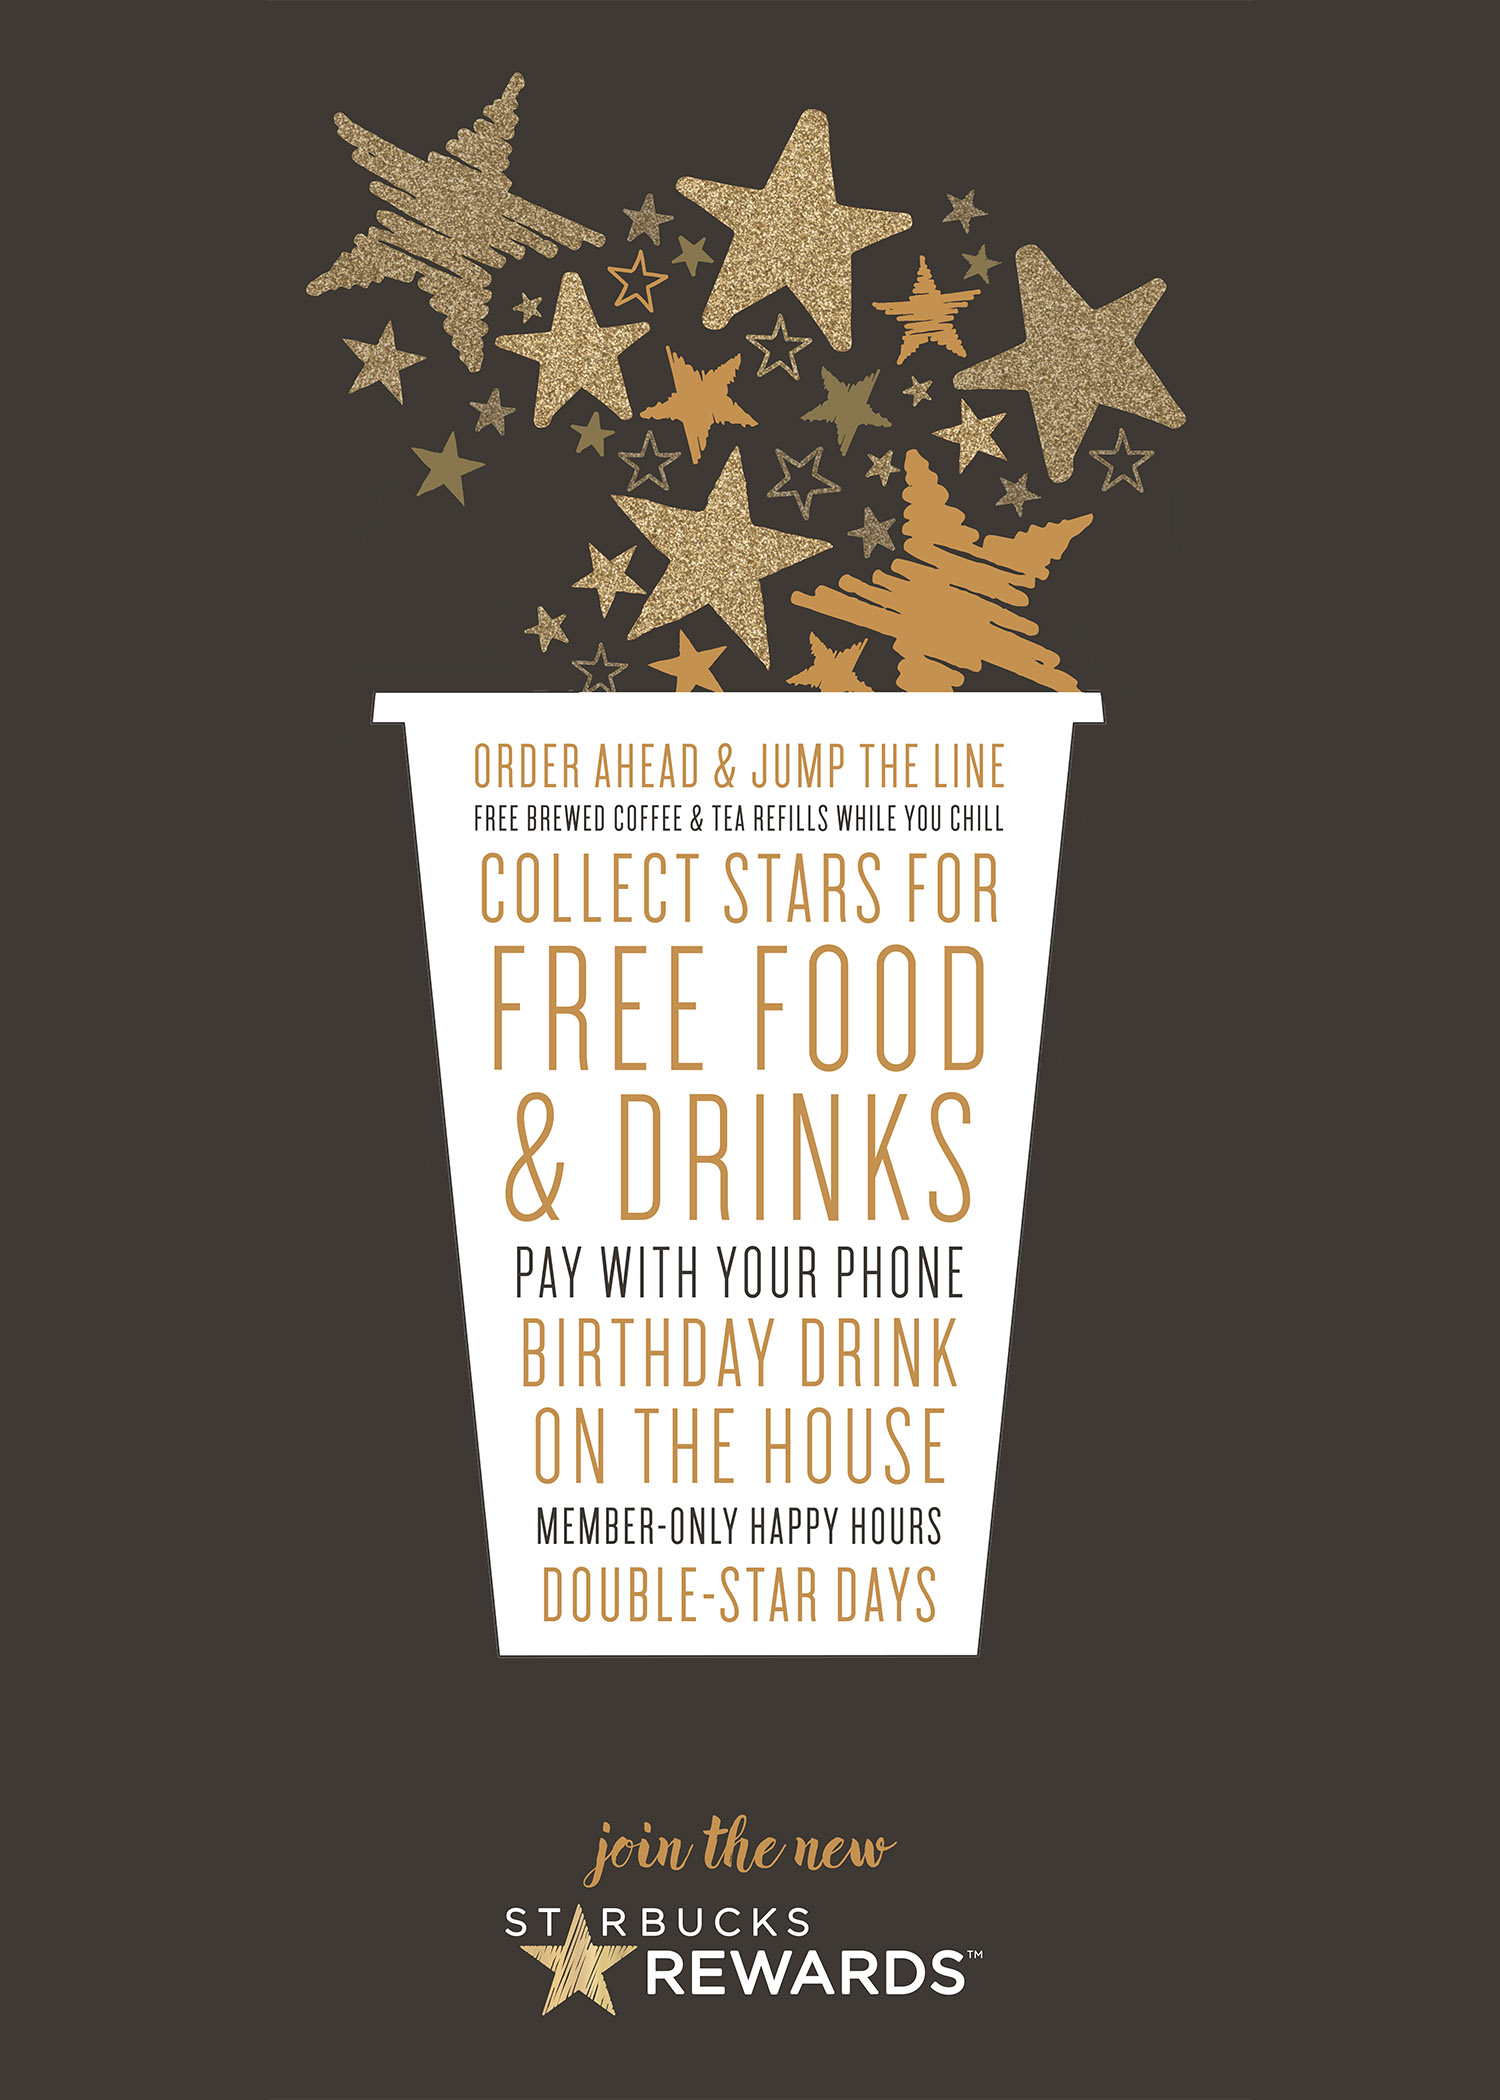 Earn 2 Stars for every dollar you spend in participating stores (including airports). Once you reach Gold Status, you'll get a Reward every Stars, good for free food or drink at a participating Starbucks .